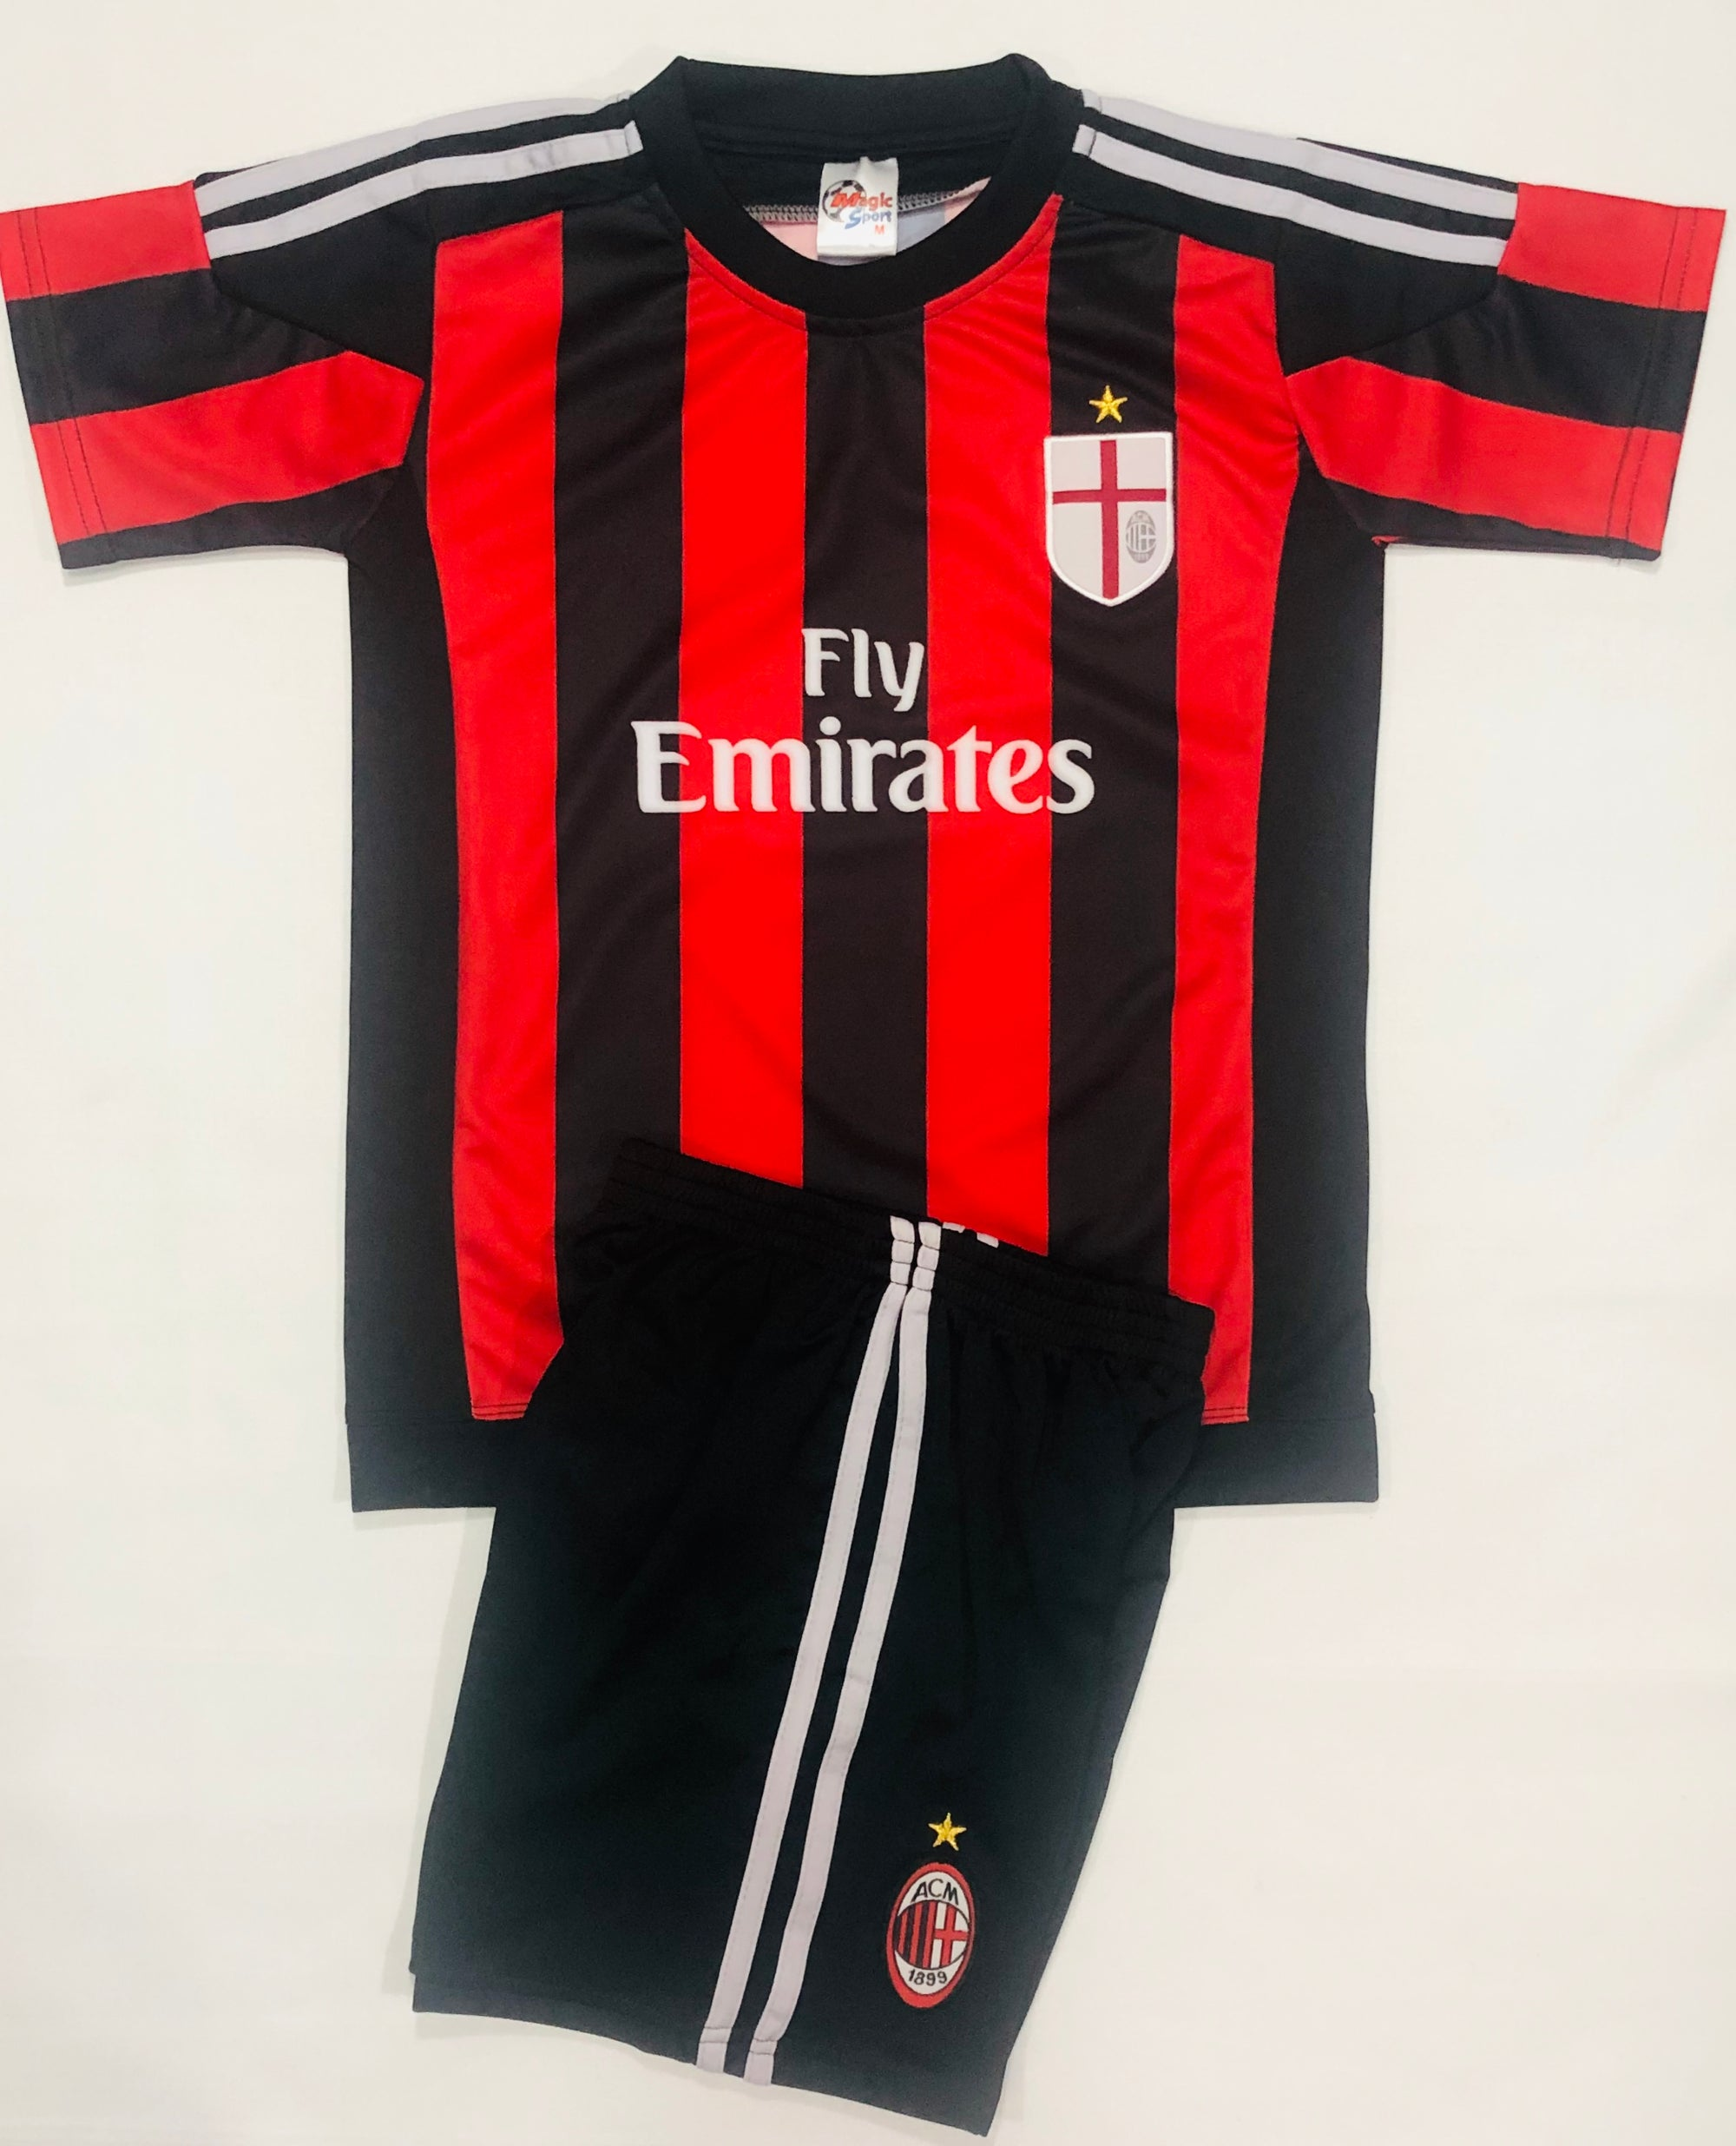 AC MILAN HOME 2015/16 KIDS 2-PIECE SOCCER SET (Version MS)